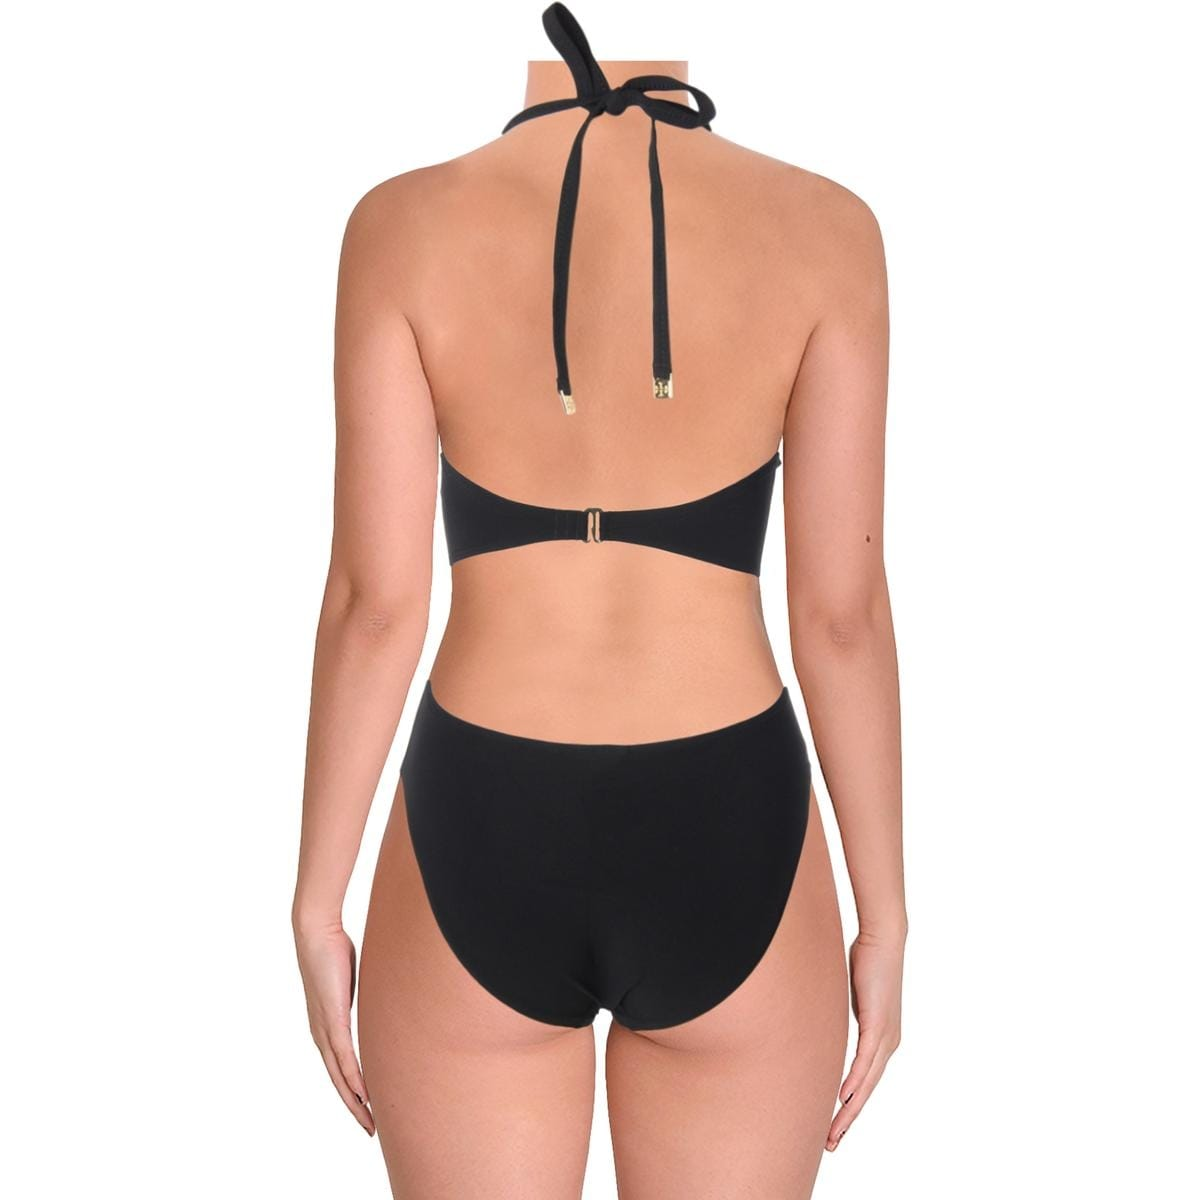 16fd7f47be95dc Shop Tory Burch Womens Halter Bandeau One-Piece Swimsuit - Free Shipping  Today - Overstock - 25624347